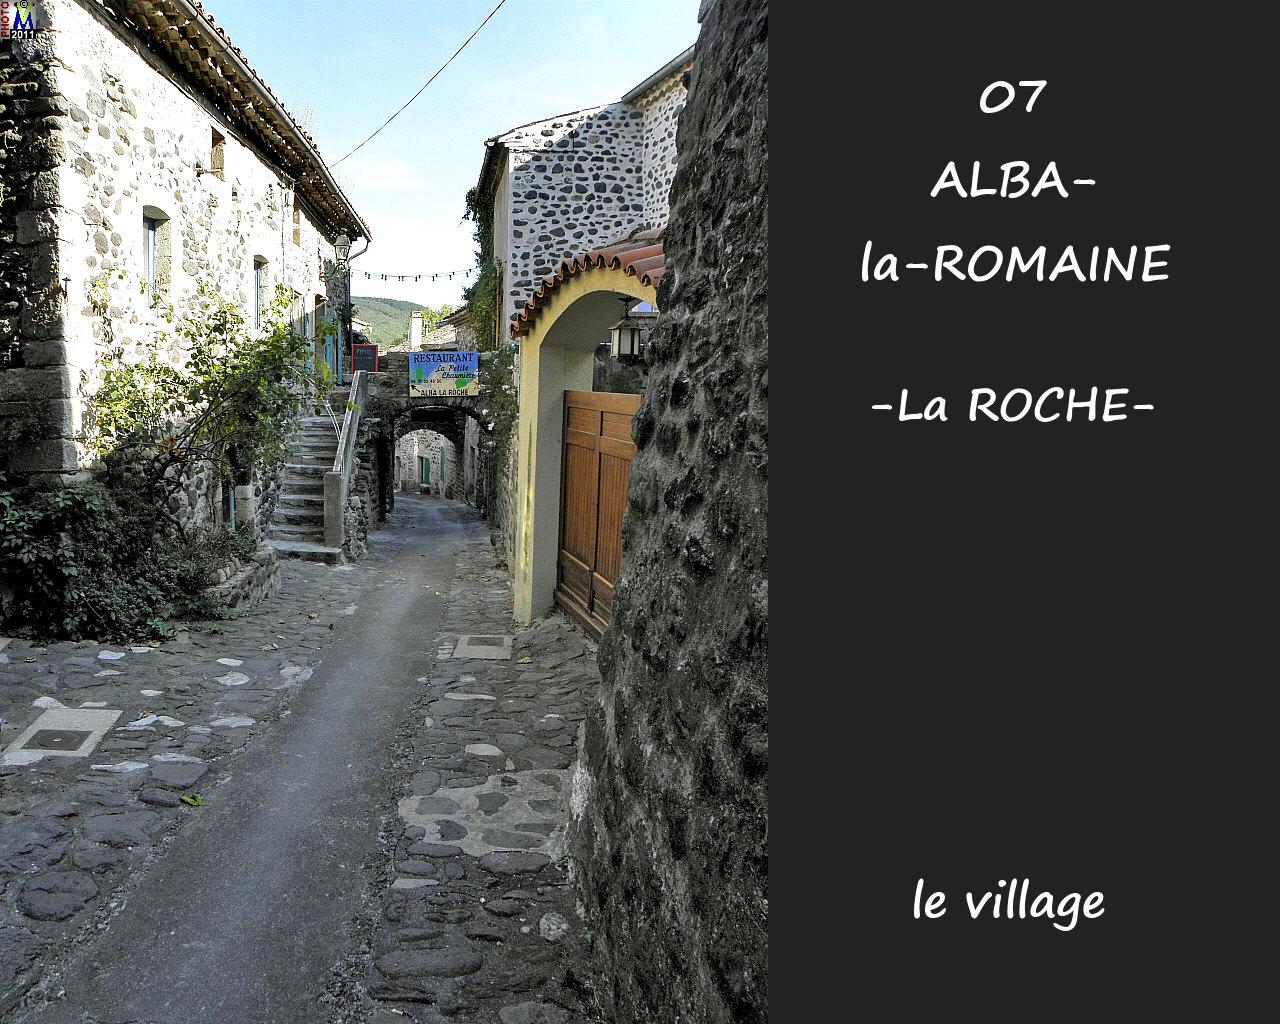 07ALBA-ROMAINEzROCHE_village_128.jpg